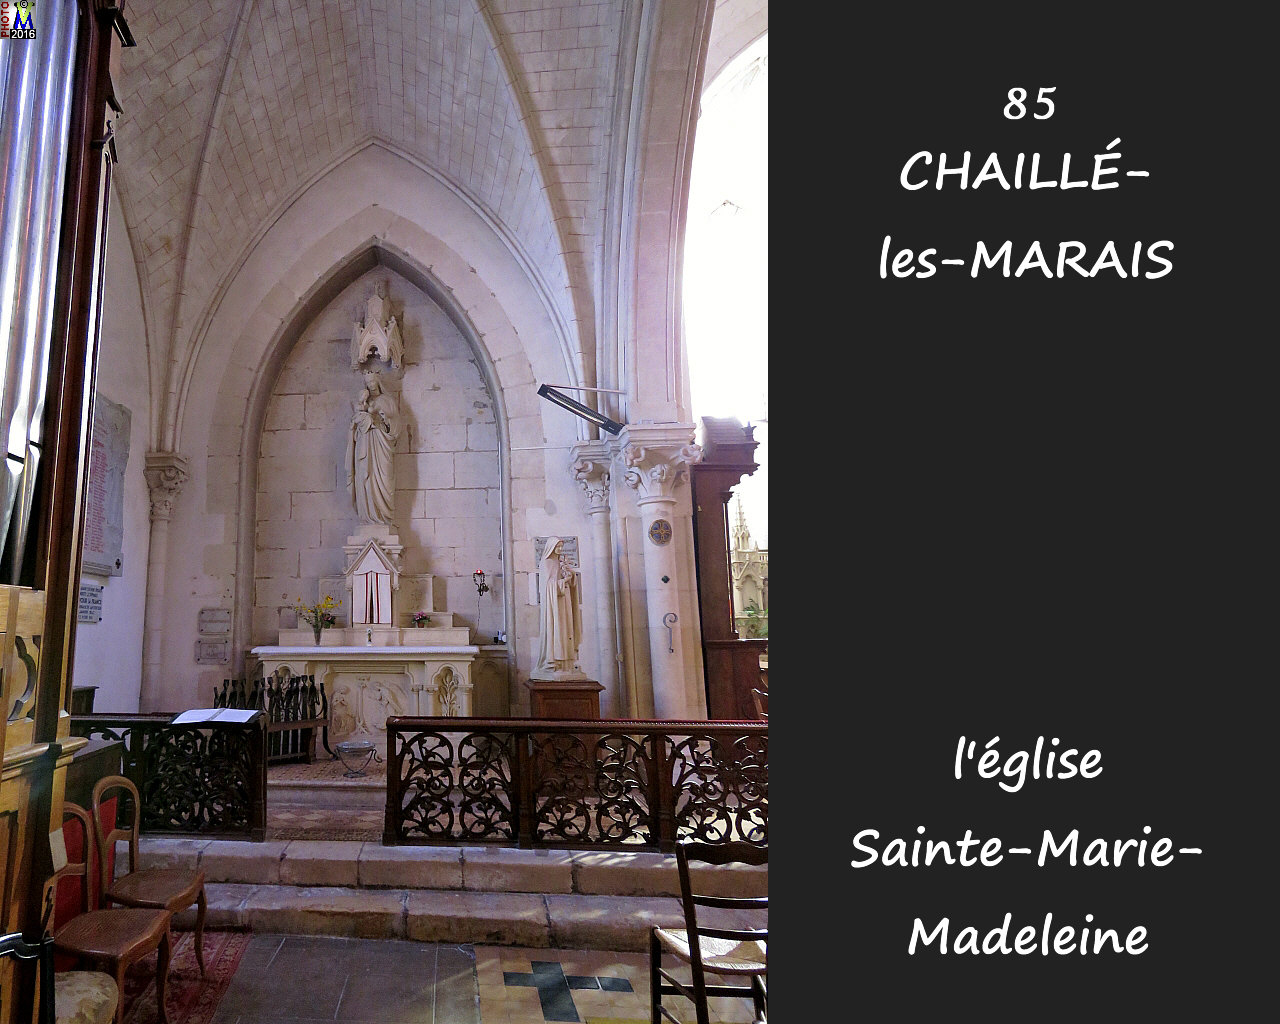 85CHAILLE-MARAIS_eglise_1224.jpg